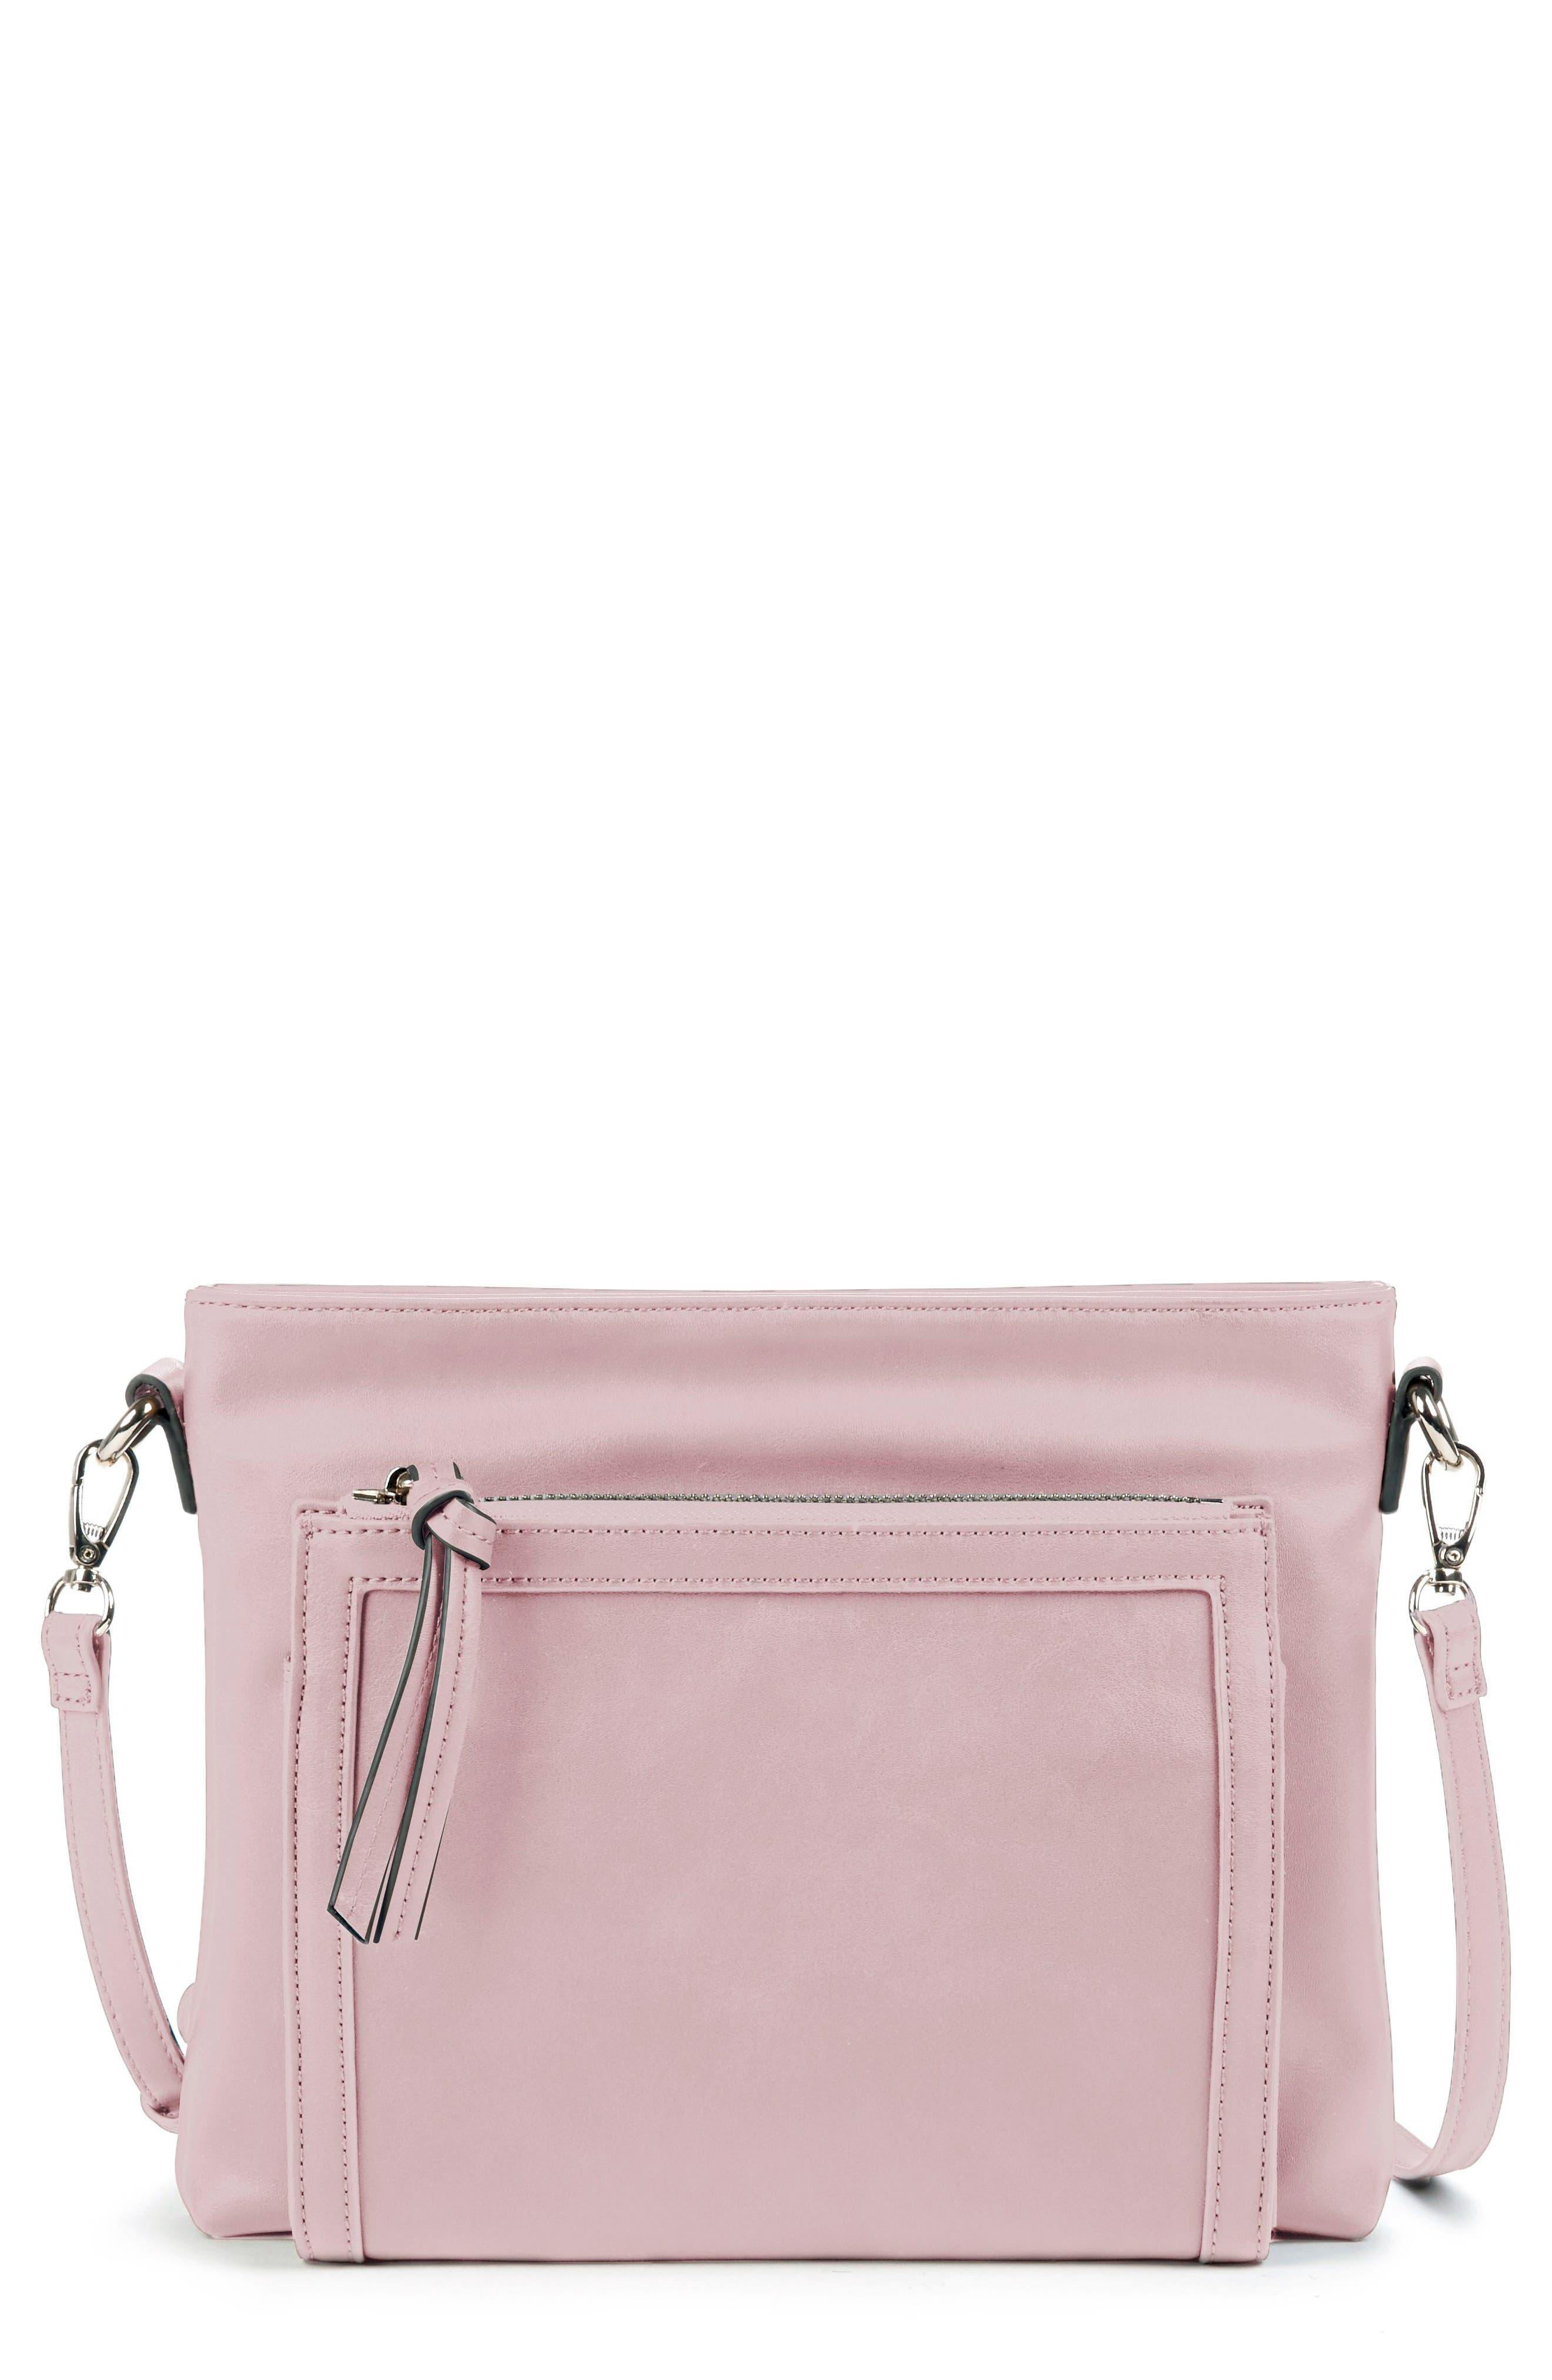 Main Image - Sole Society Flat Faux Leather Crossbody Bag